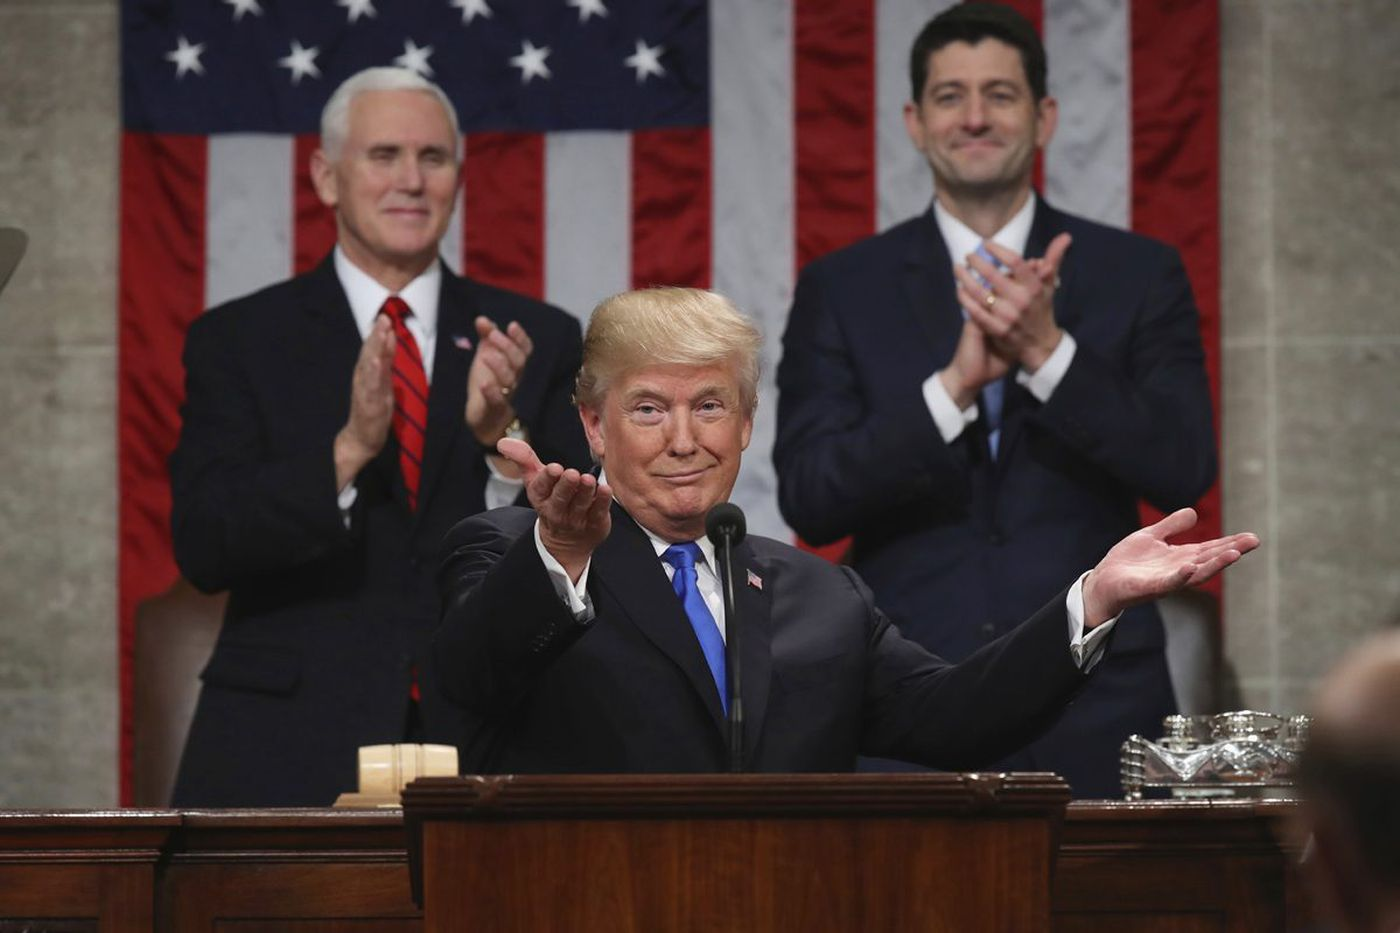 State of the Union 2018: Recap, reaction and fact checks from Donald Trump's speech